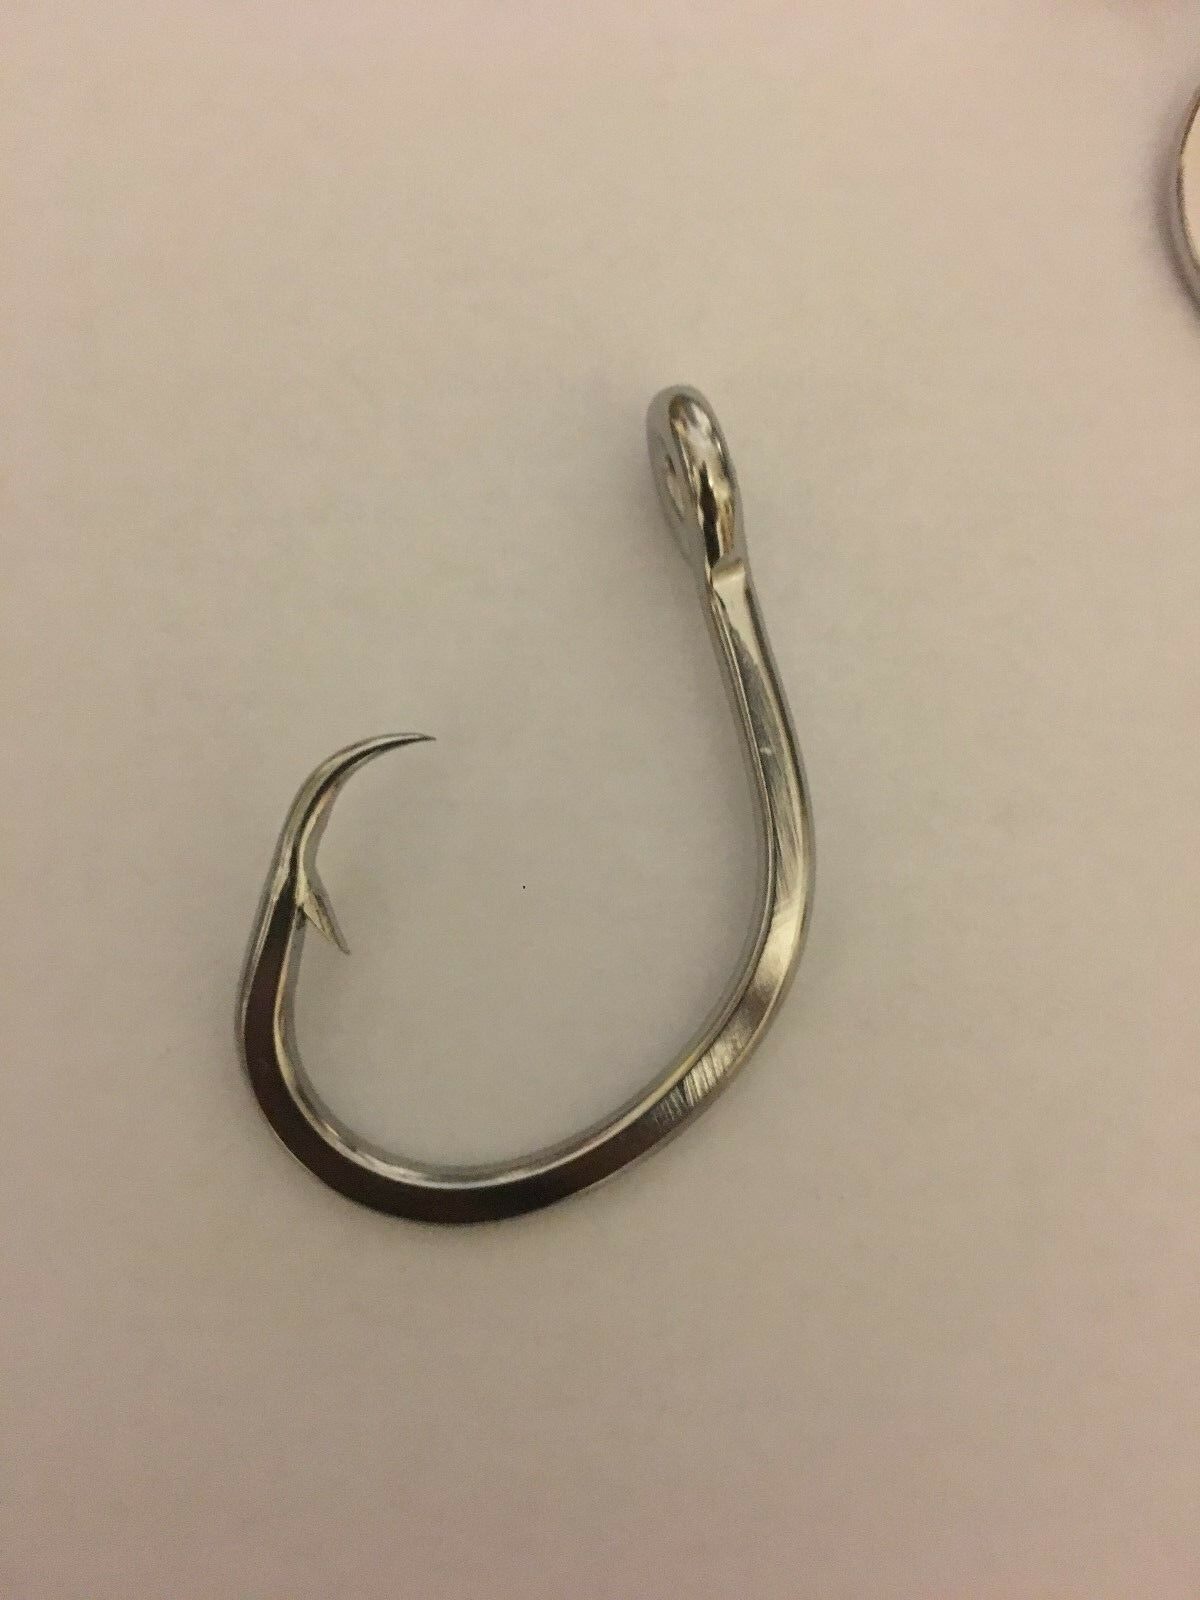 50 pcs  0 Stainless Steel Circle Tuna Fish Hook  (50 Hooks)  more discount